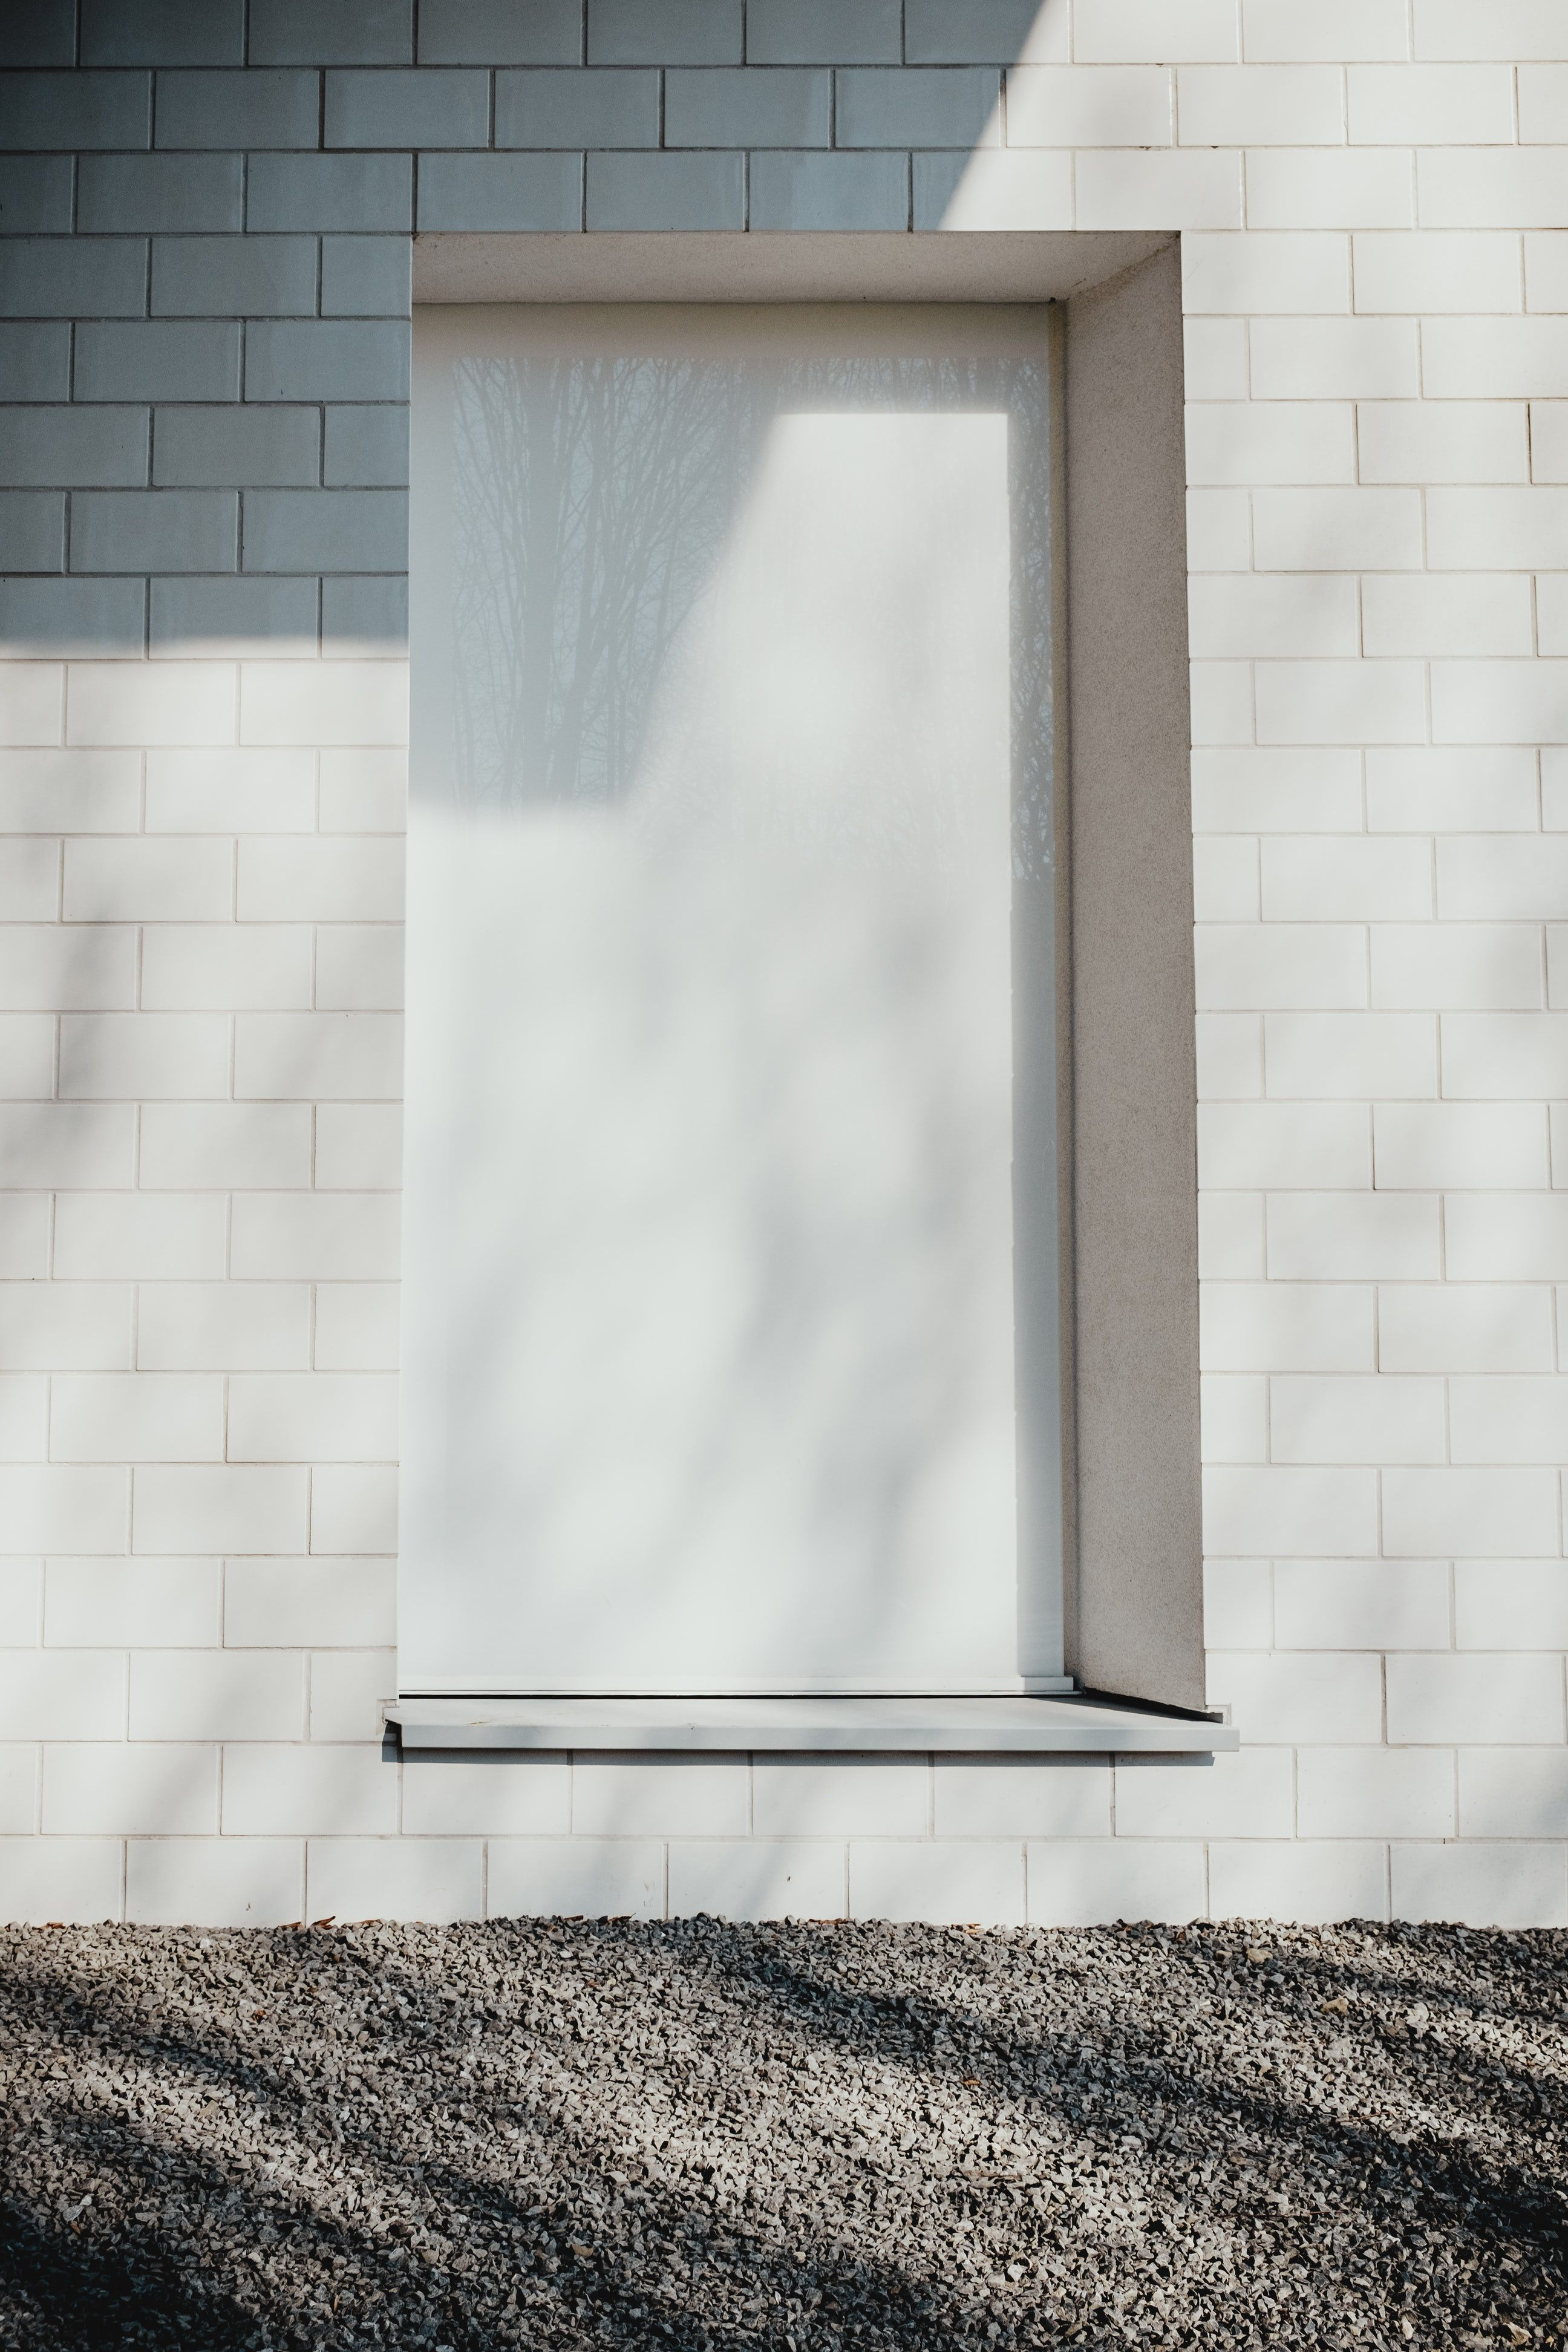 White Brick Pictures Download Free Images On Unsplash Brick Images White Wall Paint White Brick